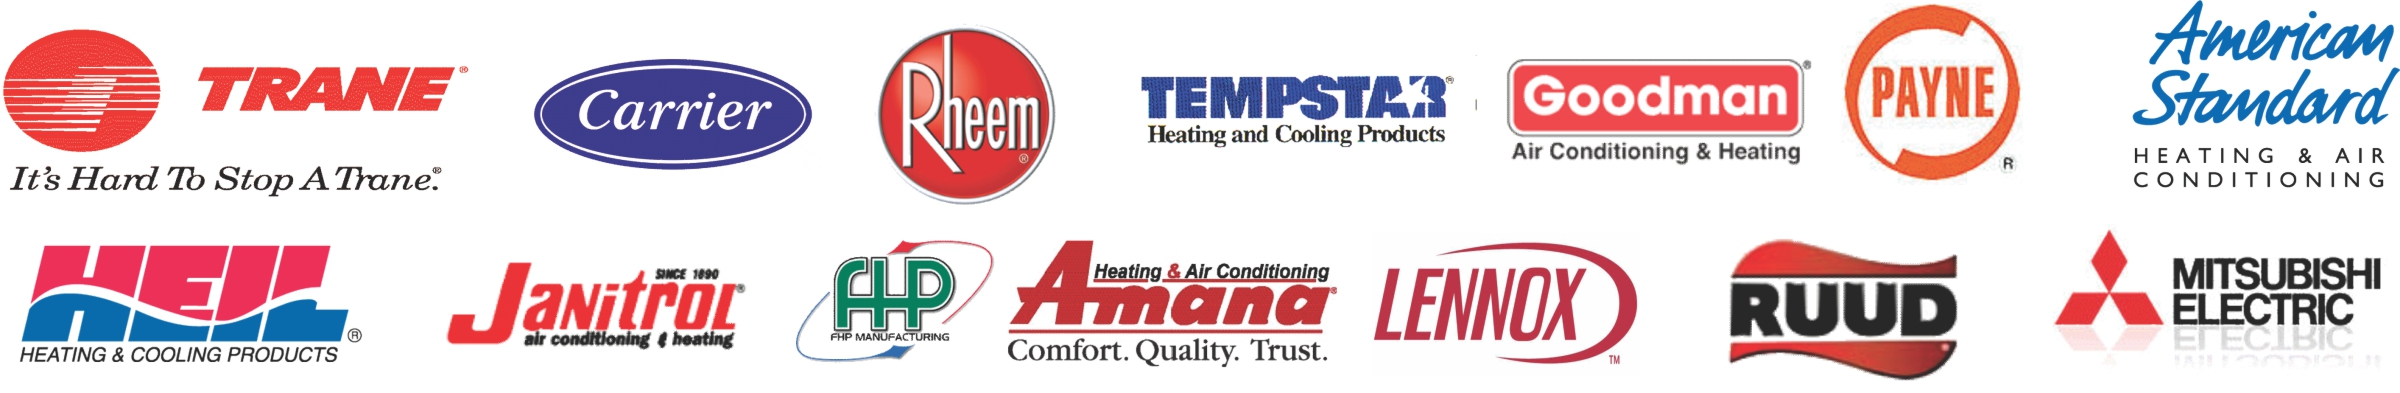 Pompano Beach FL Heating and Air Services